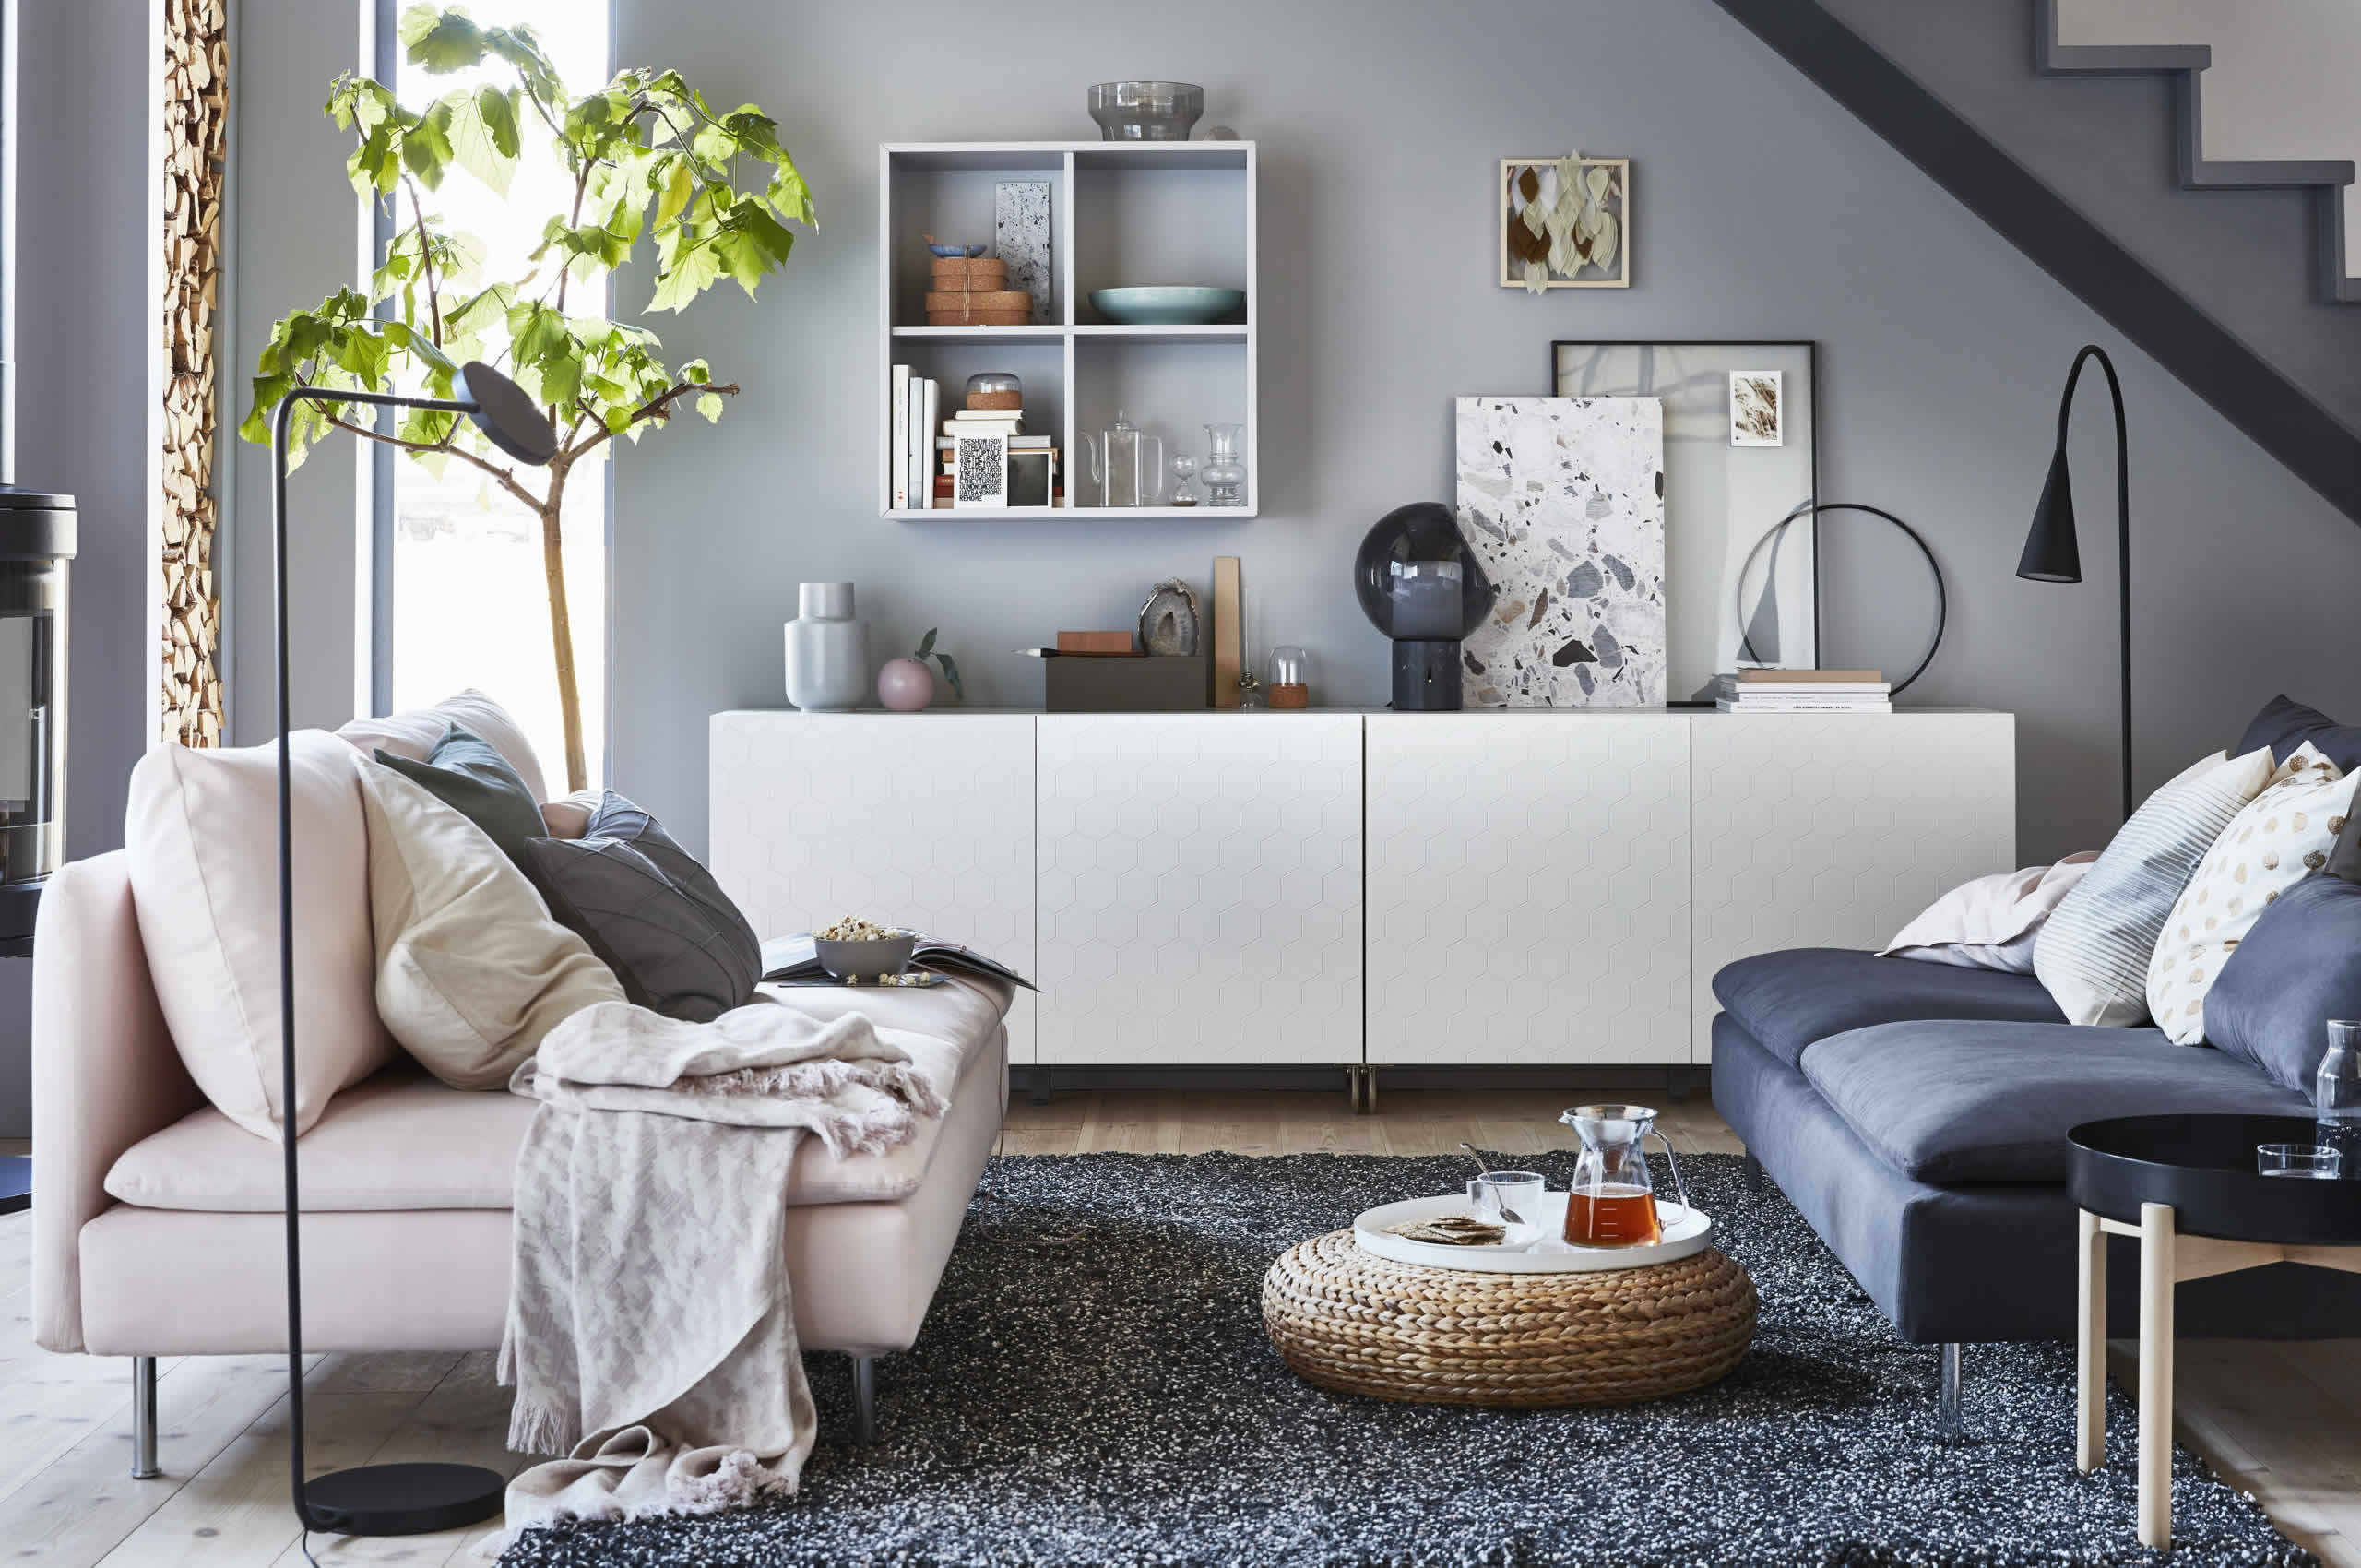 IKEA Ideas - How to style your storage